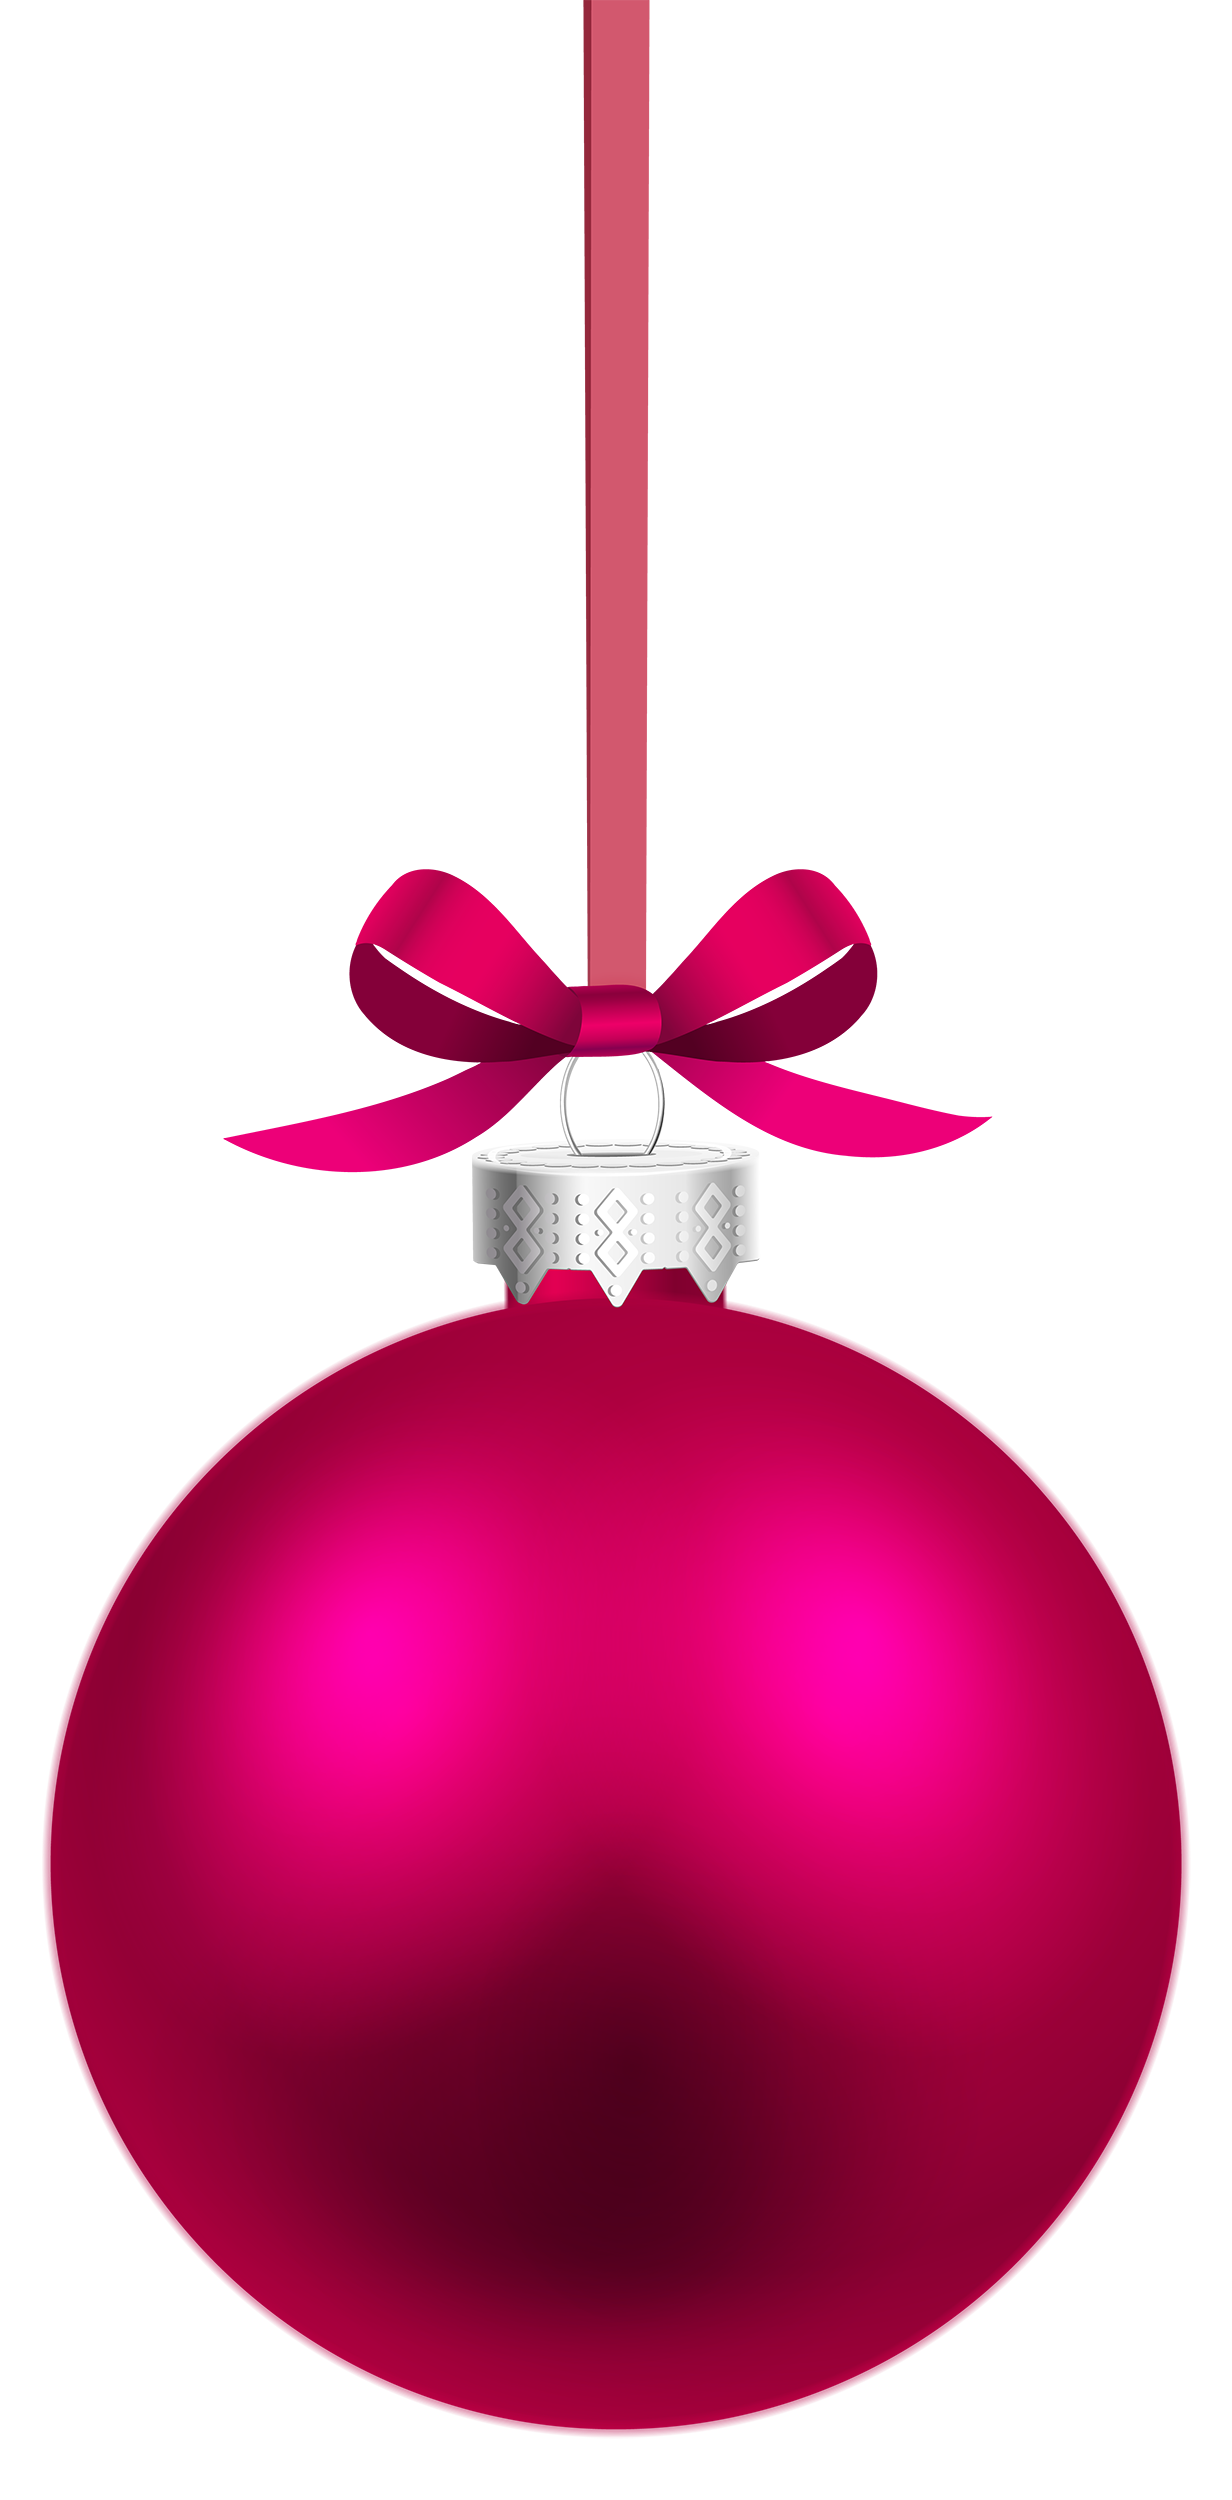 Ornaments clipart craft. Pink hanging christmas ball